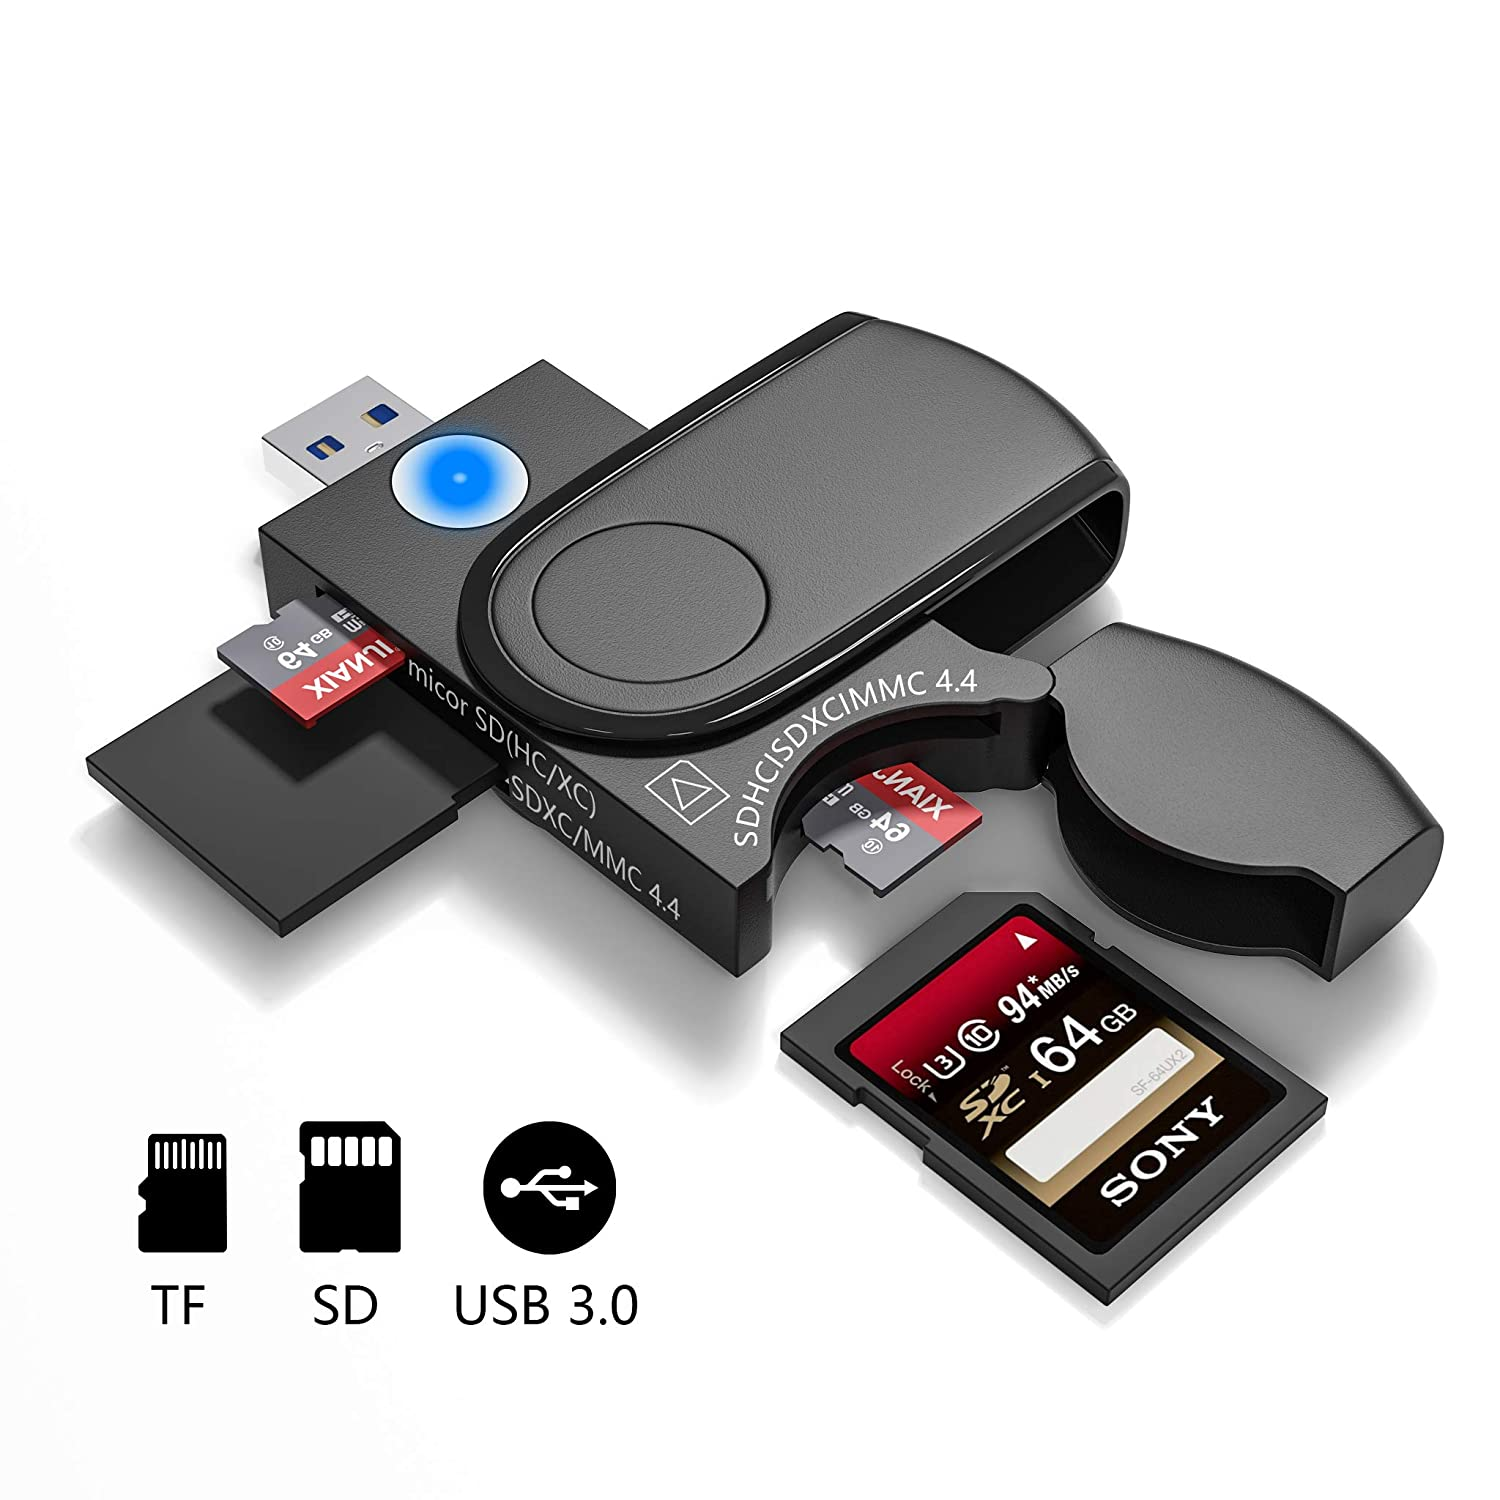 SD Card + Micro SD Card Cateck 4 in 1 USB 3.0 Memory Card Reader//Writer with a Build-in Card Cover and 4 Slots for SDXC Micro SD Micro SDHC Micro SDXC UHS-I SD SD MMC Memory Cards SDHC